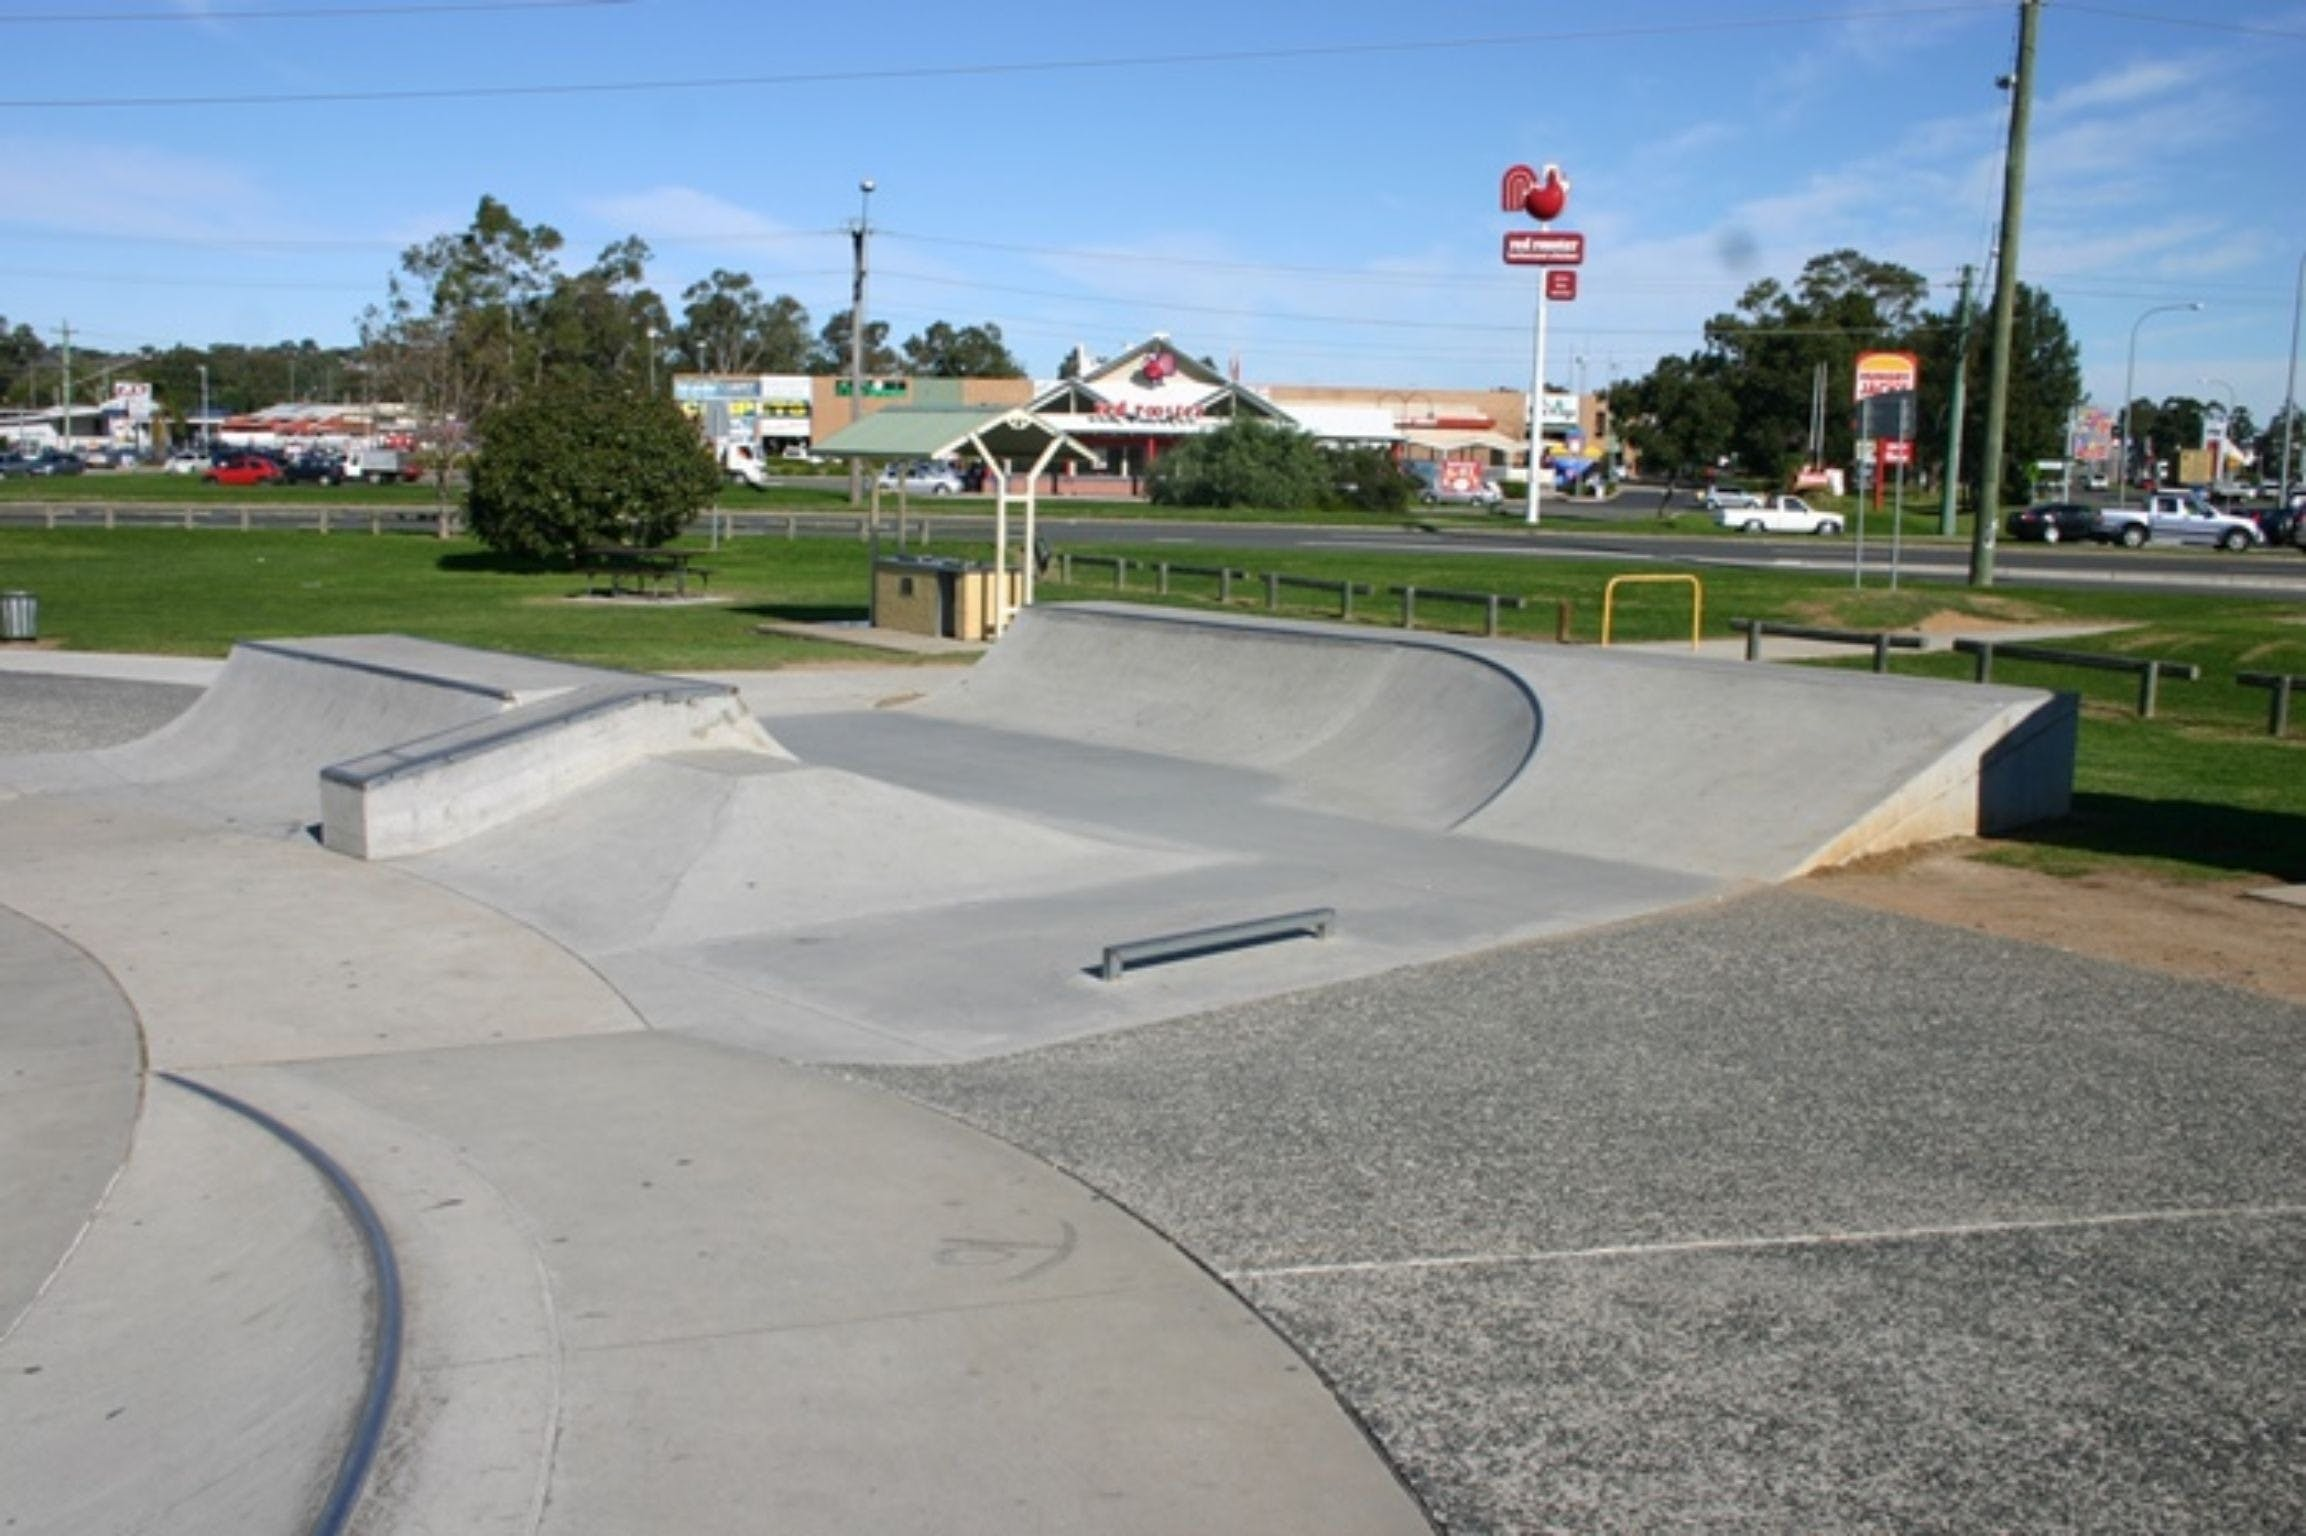 Campbelltown  Skate Park - Accommodation Bookings